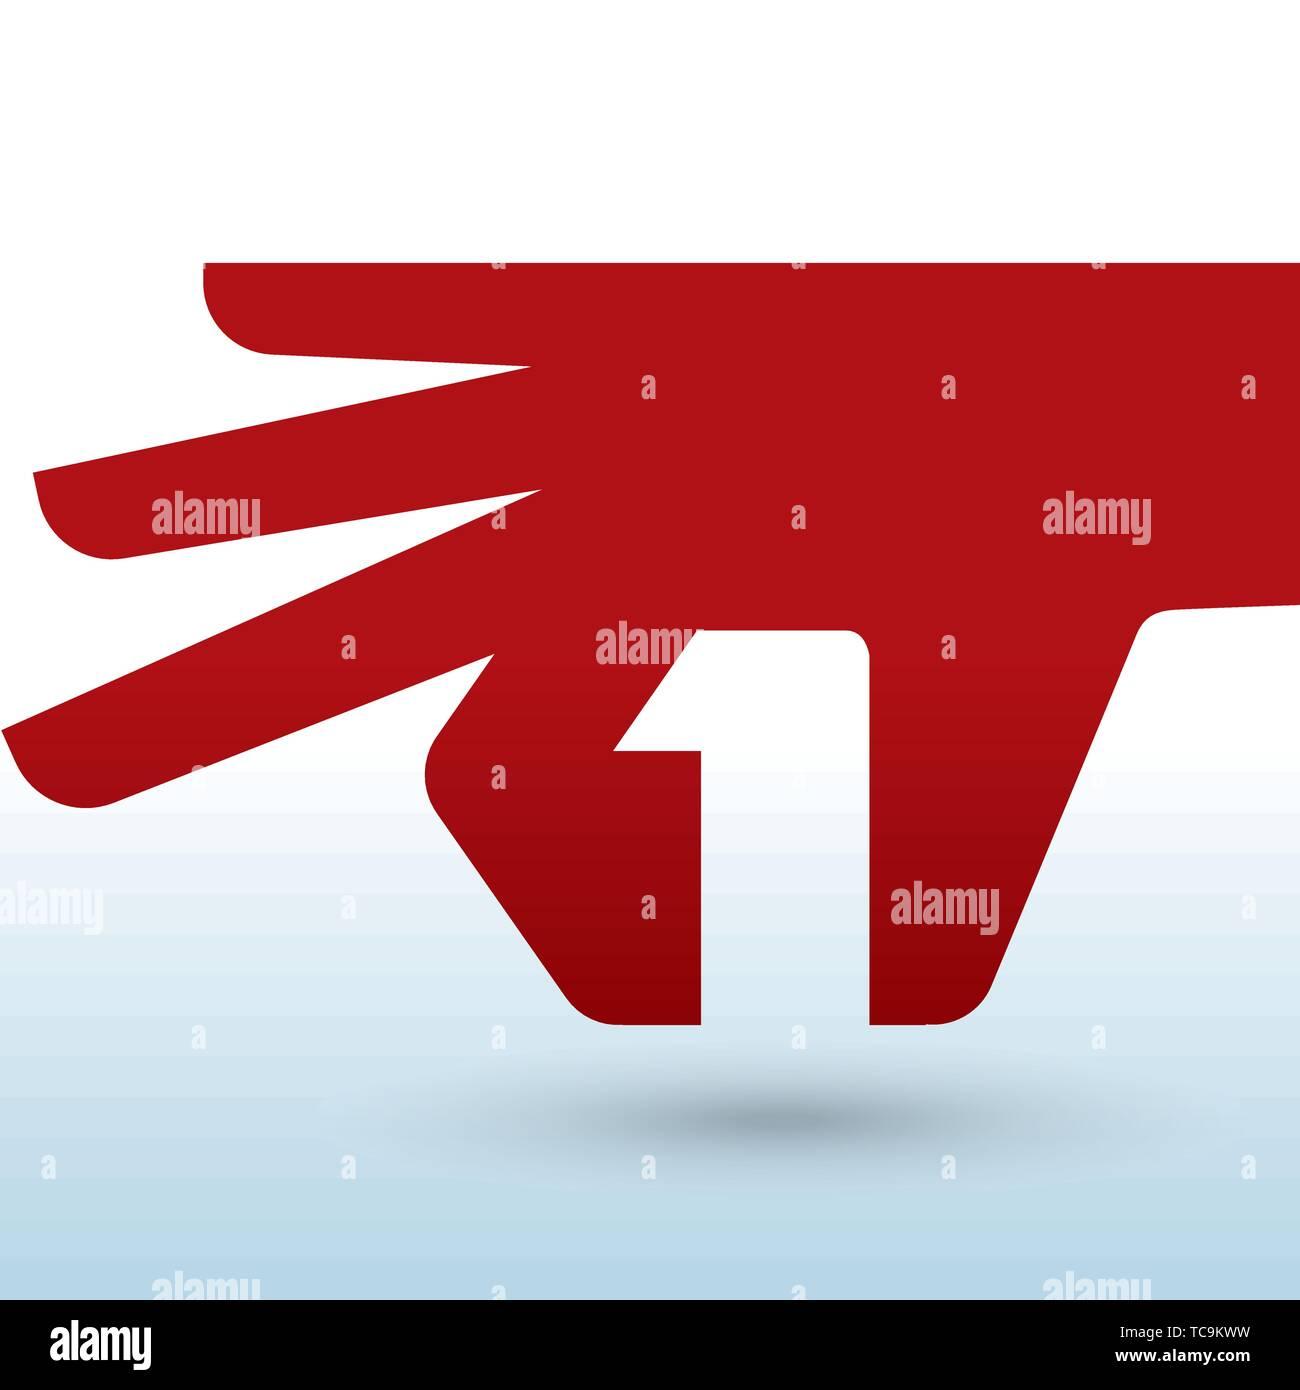 Vector illustration. Geometric hand icon with number one inside. - Stock Image